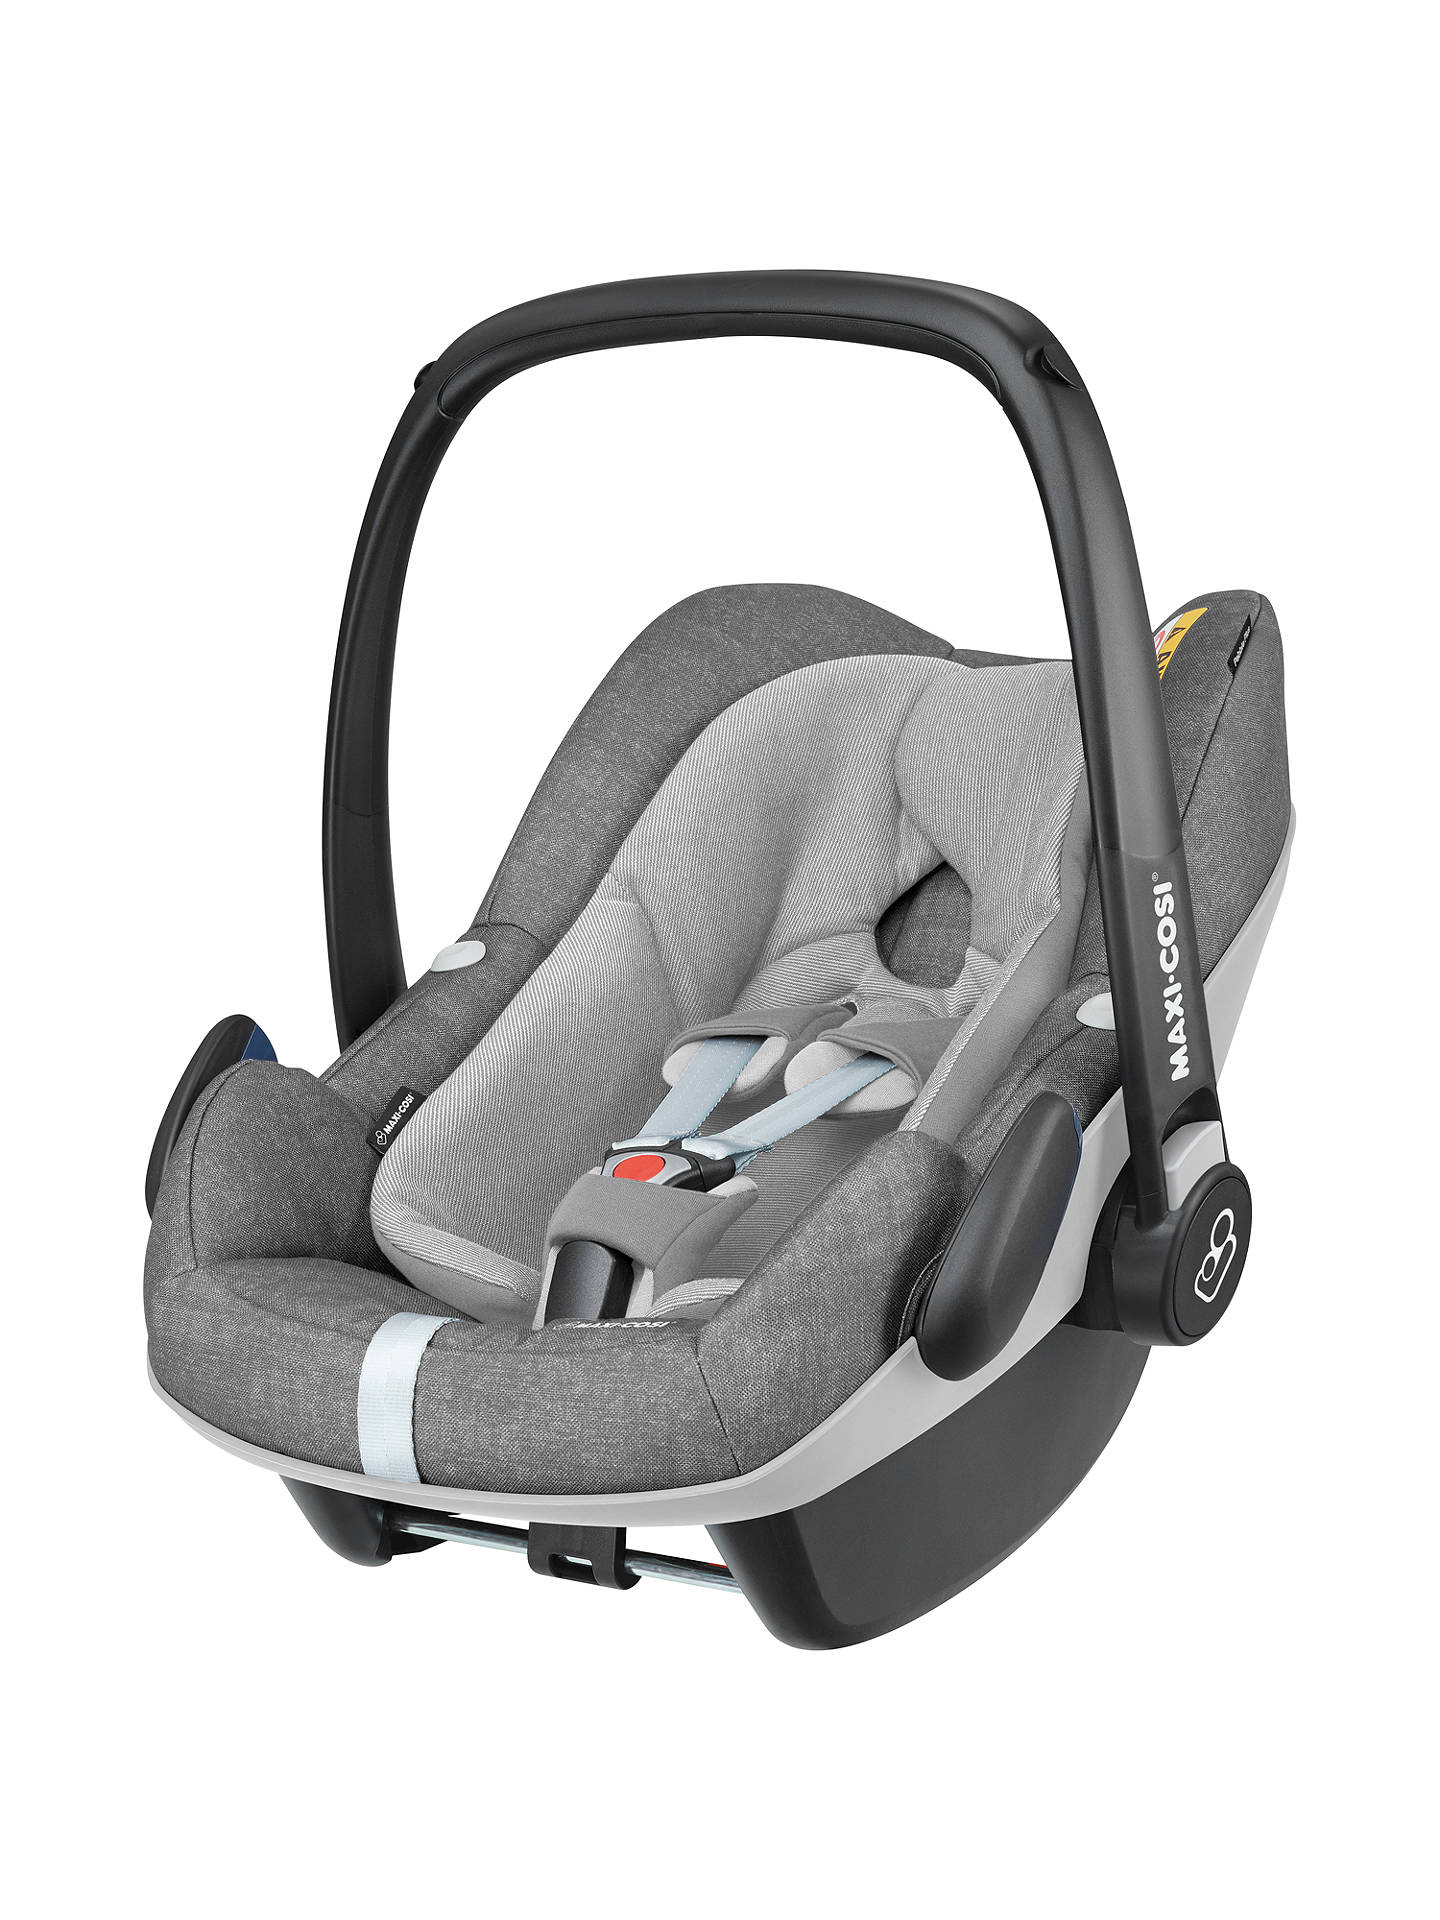 maxi cosi pebble plus i size group 0 baby car seat nomad grey at john lewis partners. Black Bedroom Furniture Sets. Home Design Ideas